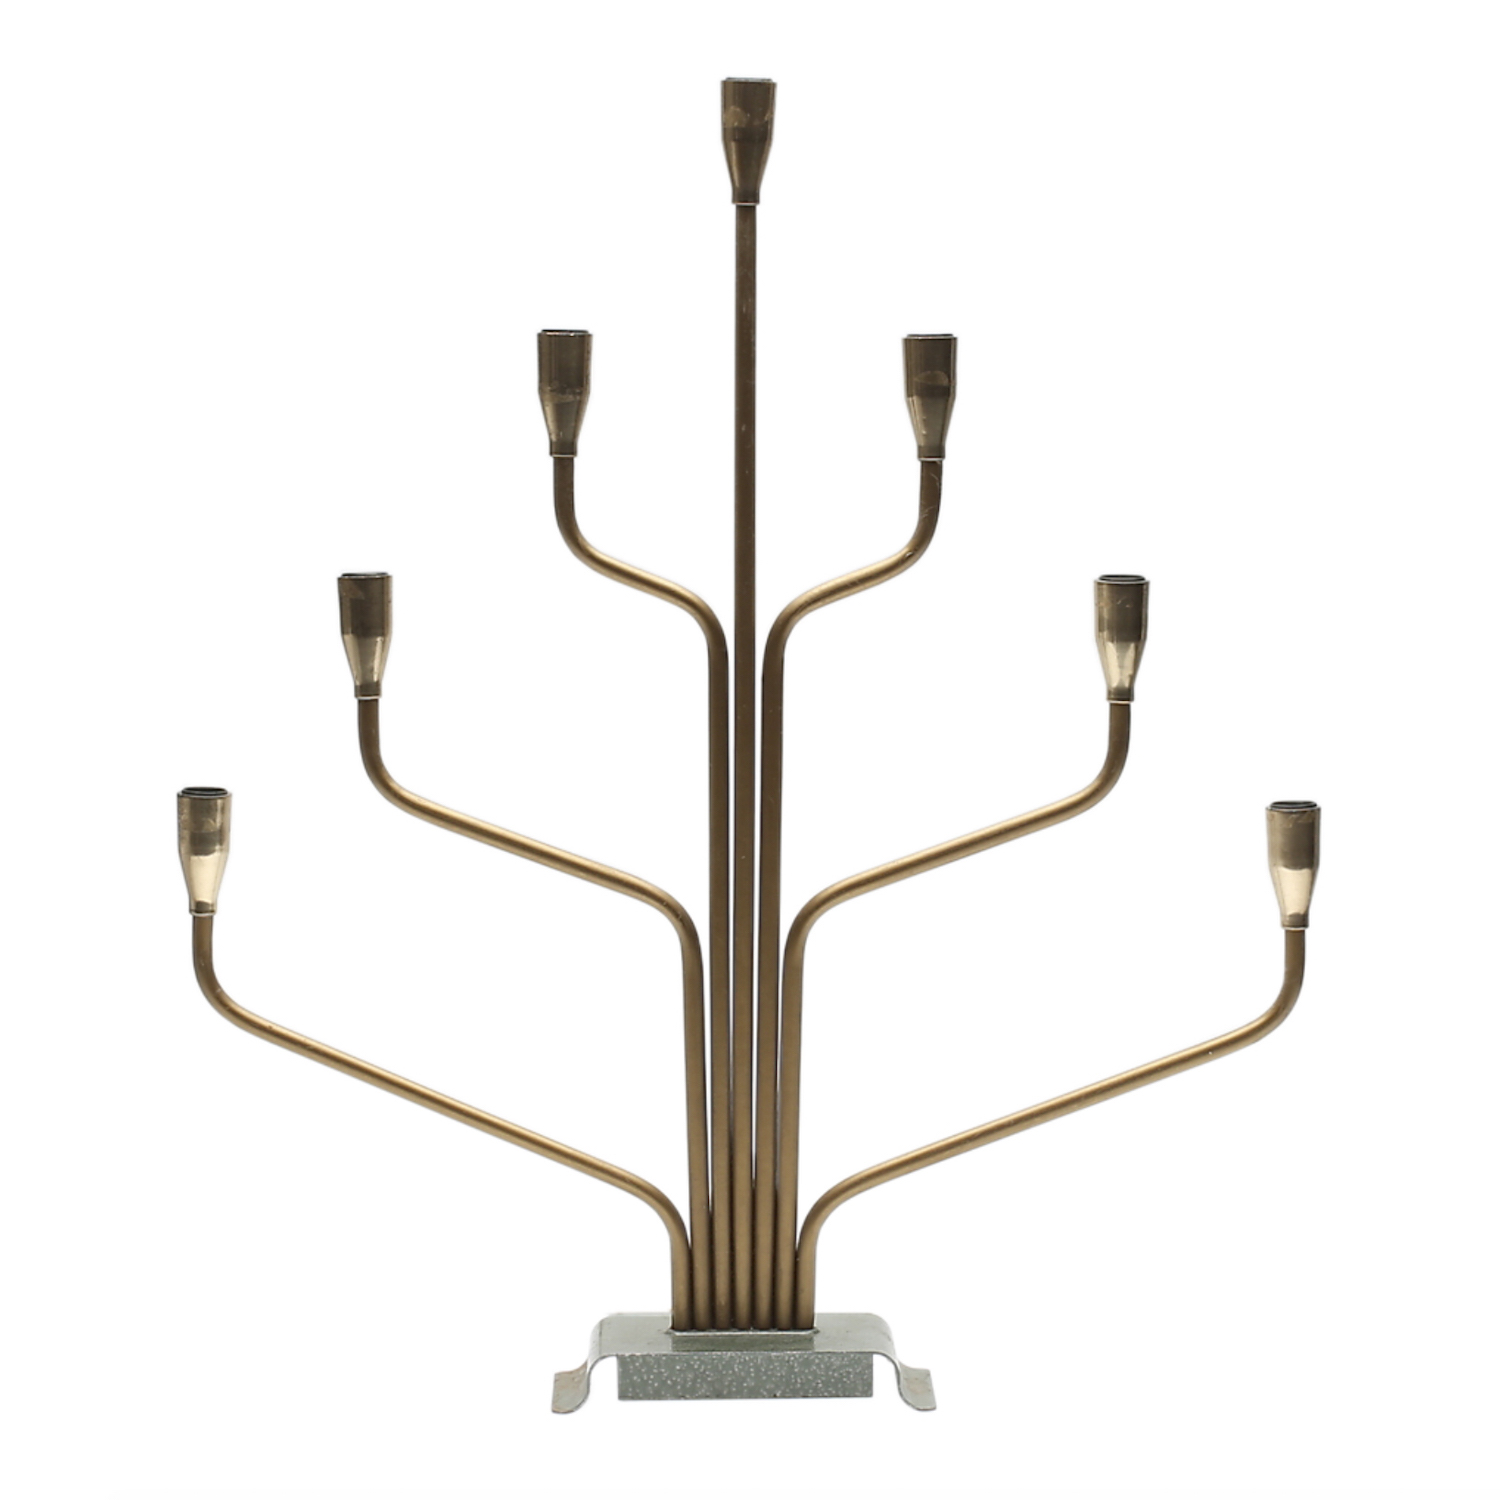 20th Century Adventsljusstake – Swedish Brass Table Light Candelabra